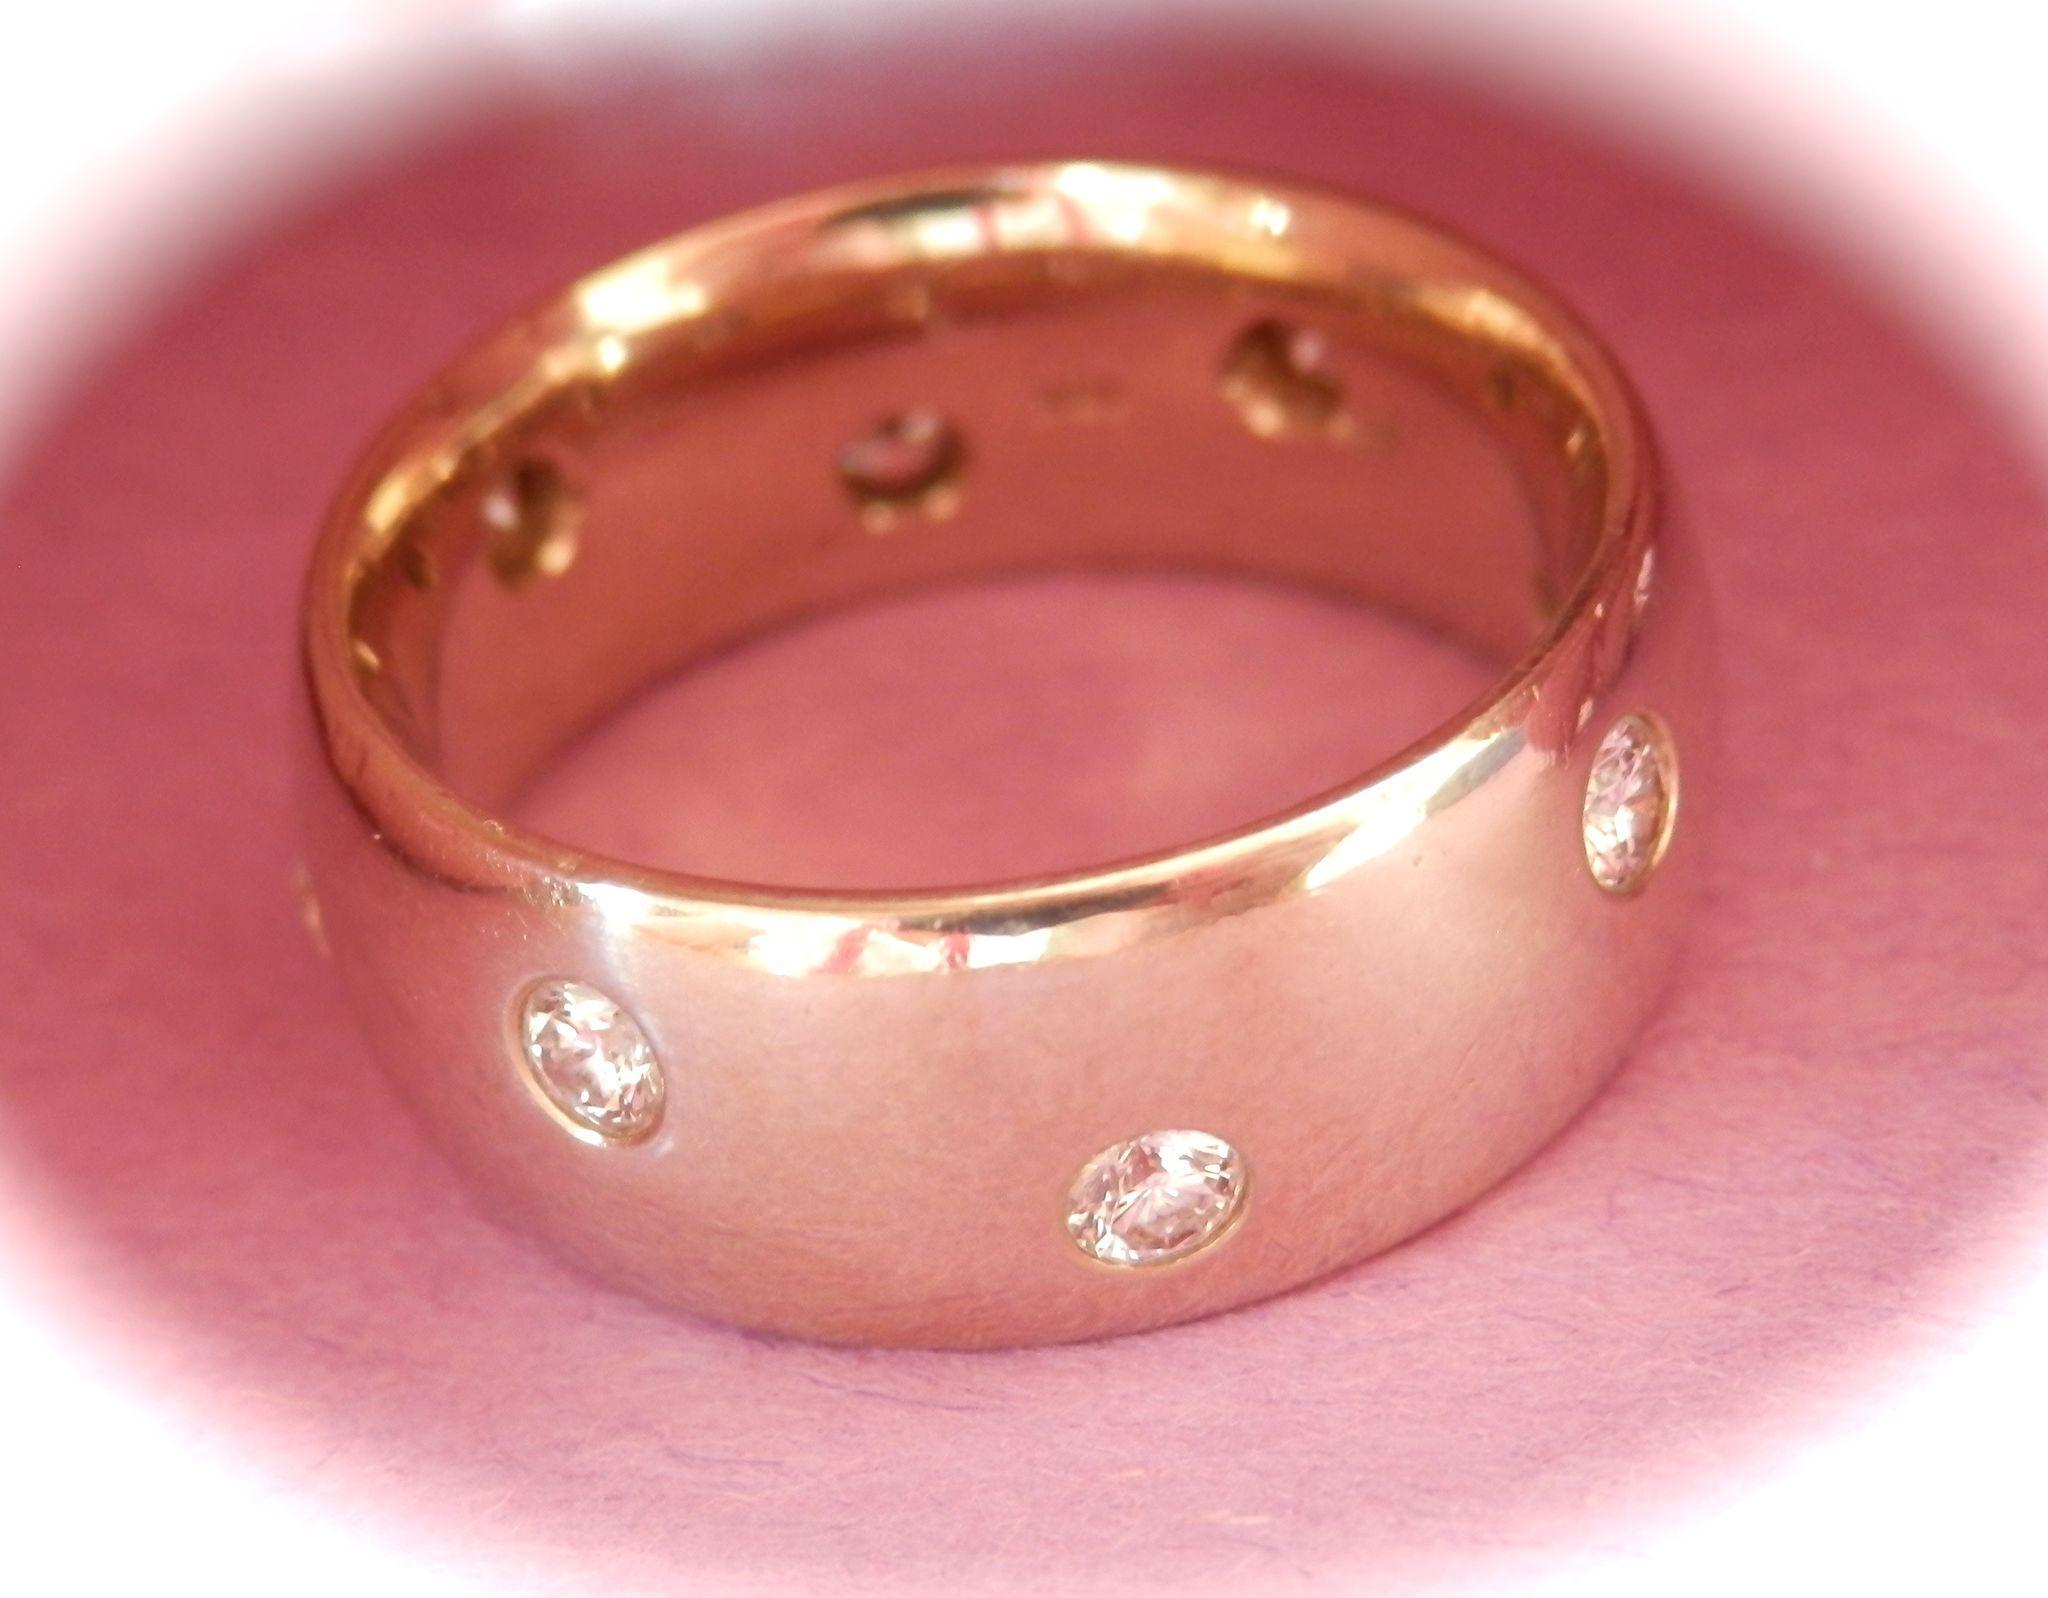 Heavy Wide 18K W/Gold 8-Diamond Etoile Band Ring~11.6 grams!